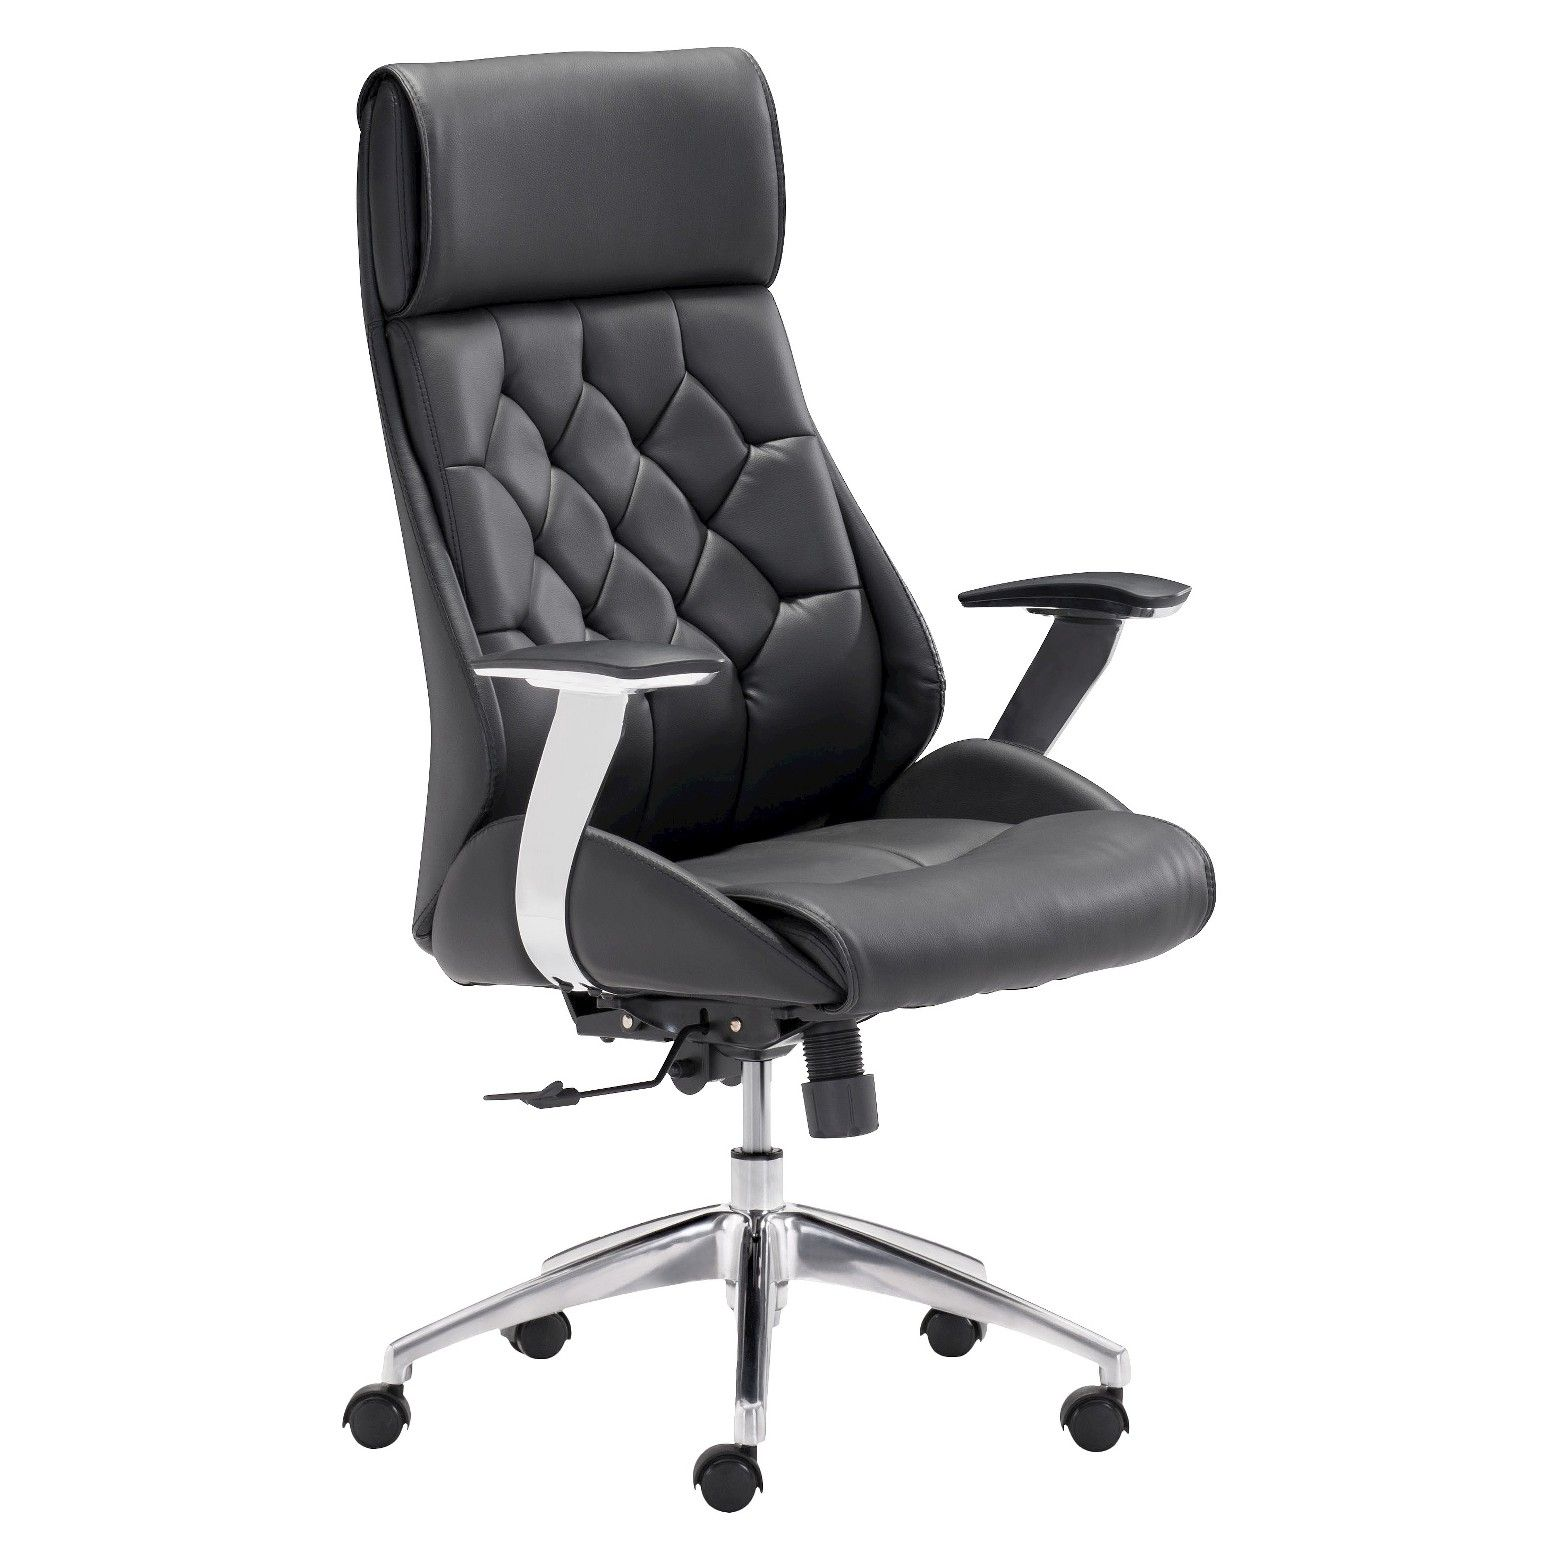 ZUO Boutique Office Chair  Modern office chair, Black office